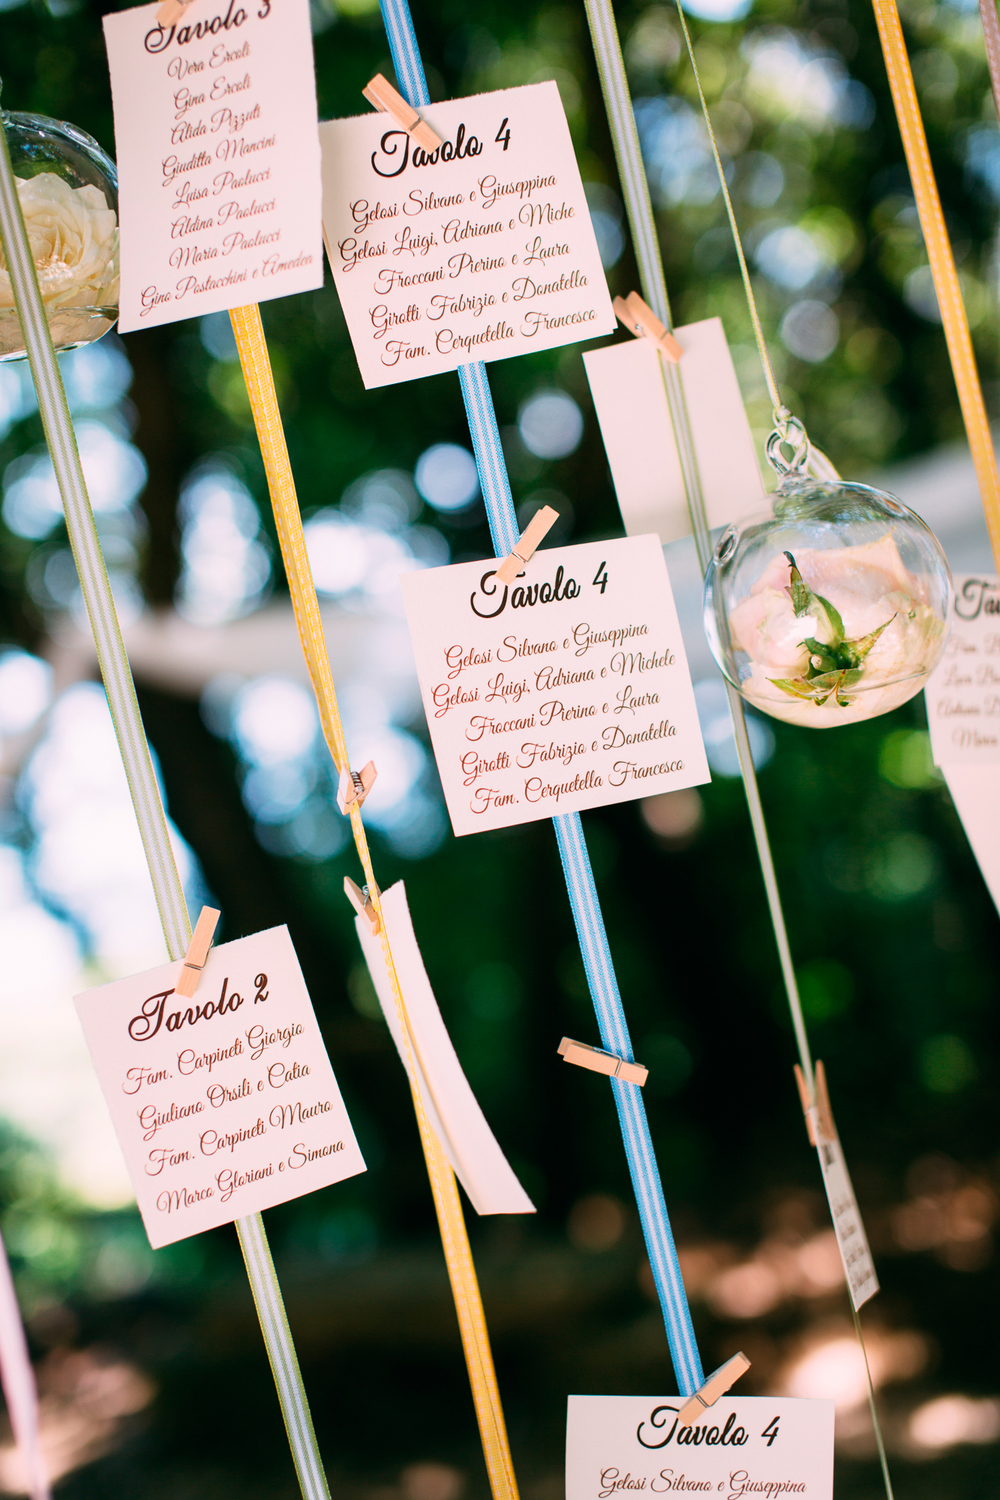 163-marche monte conero stationary wedding.jpg